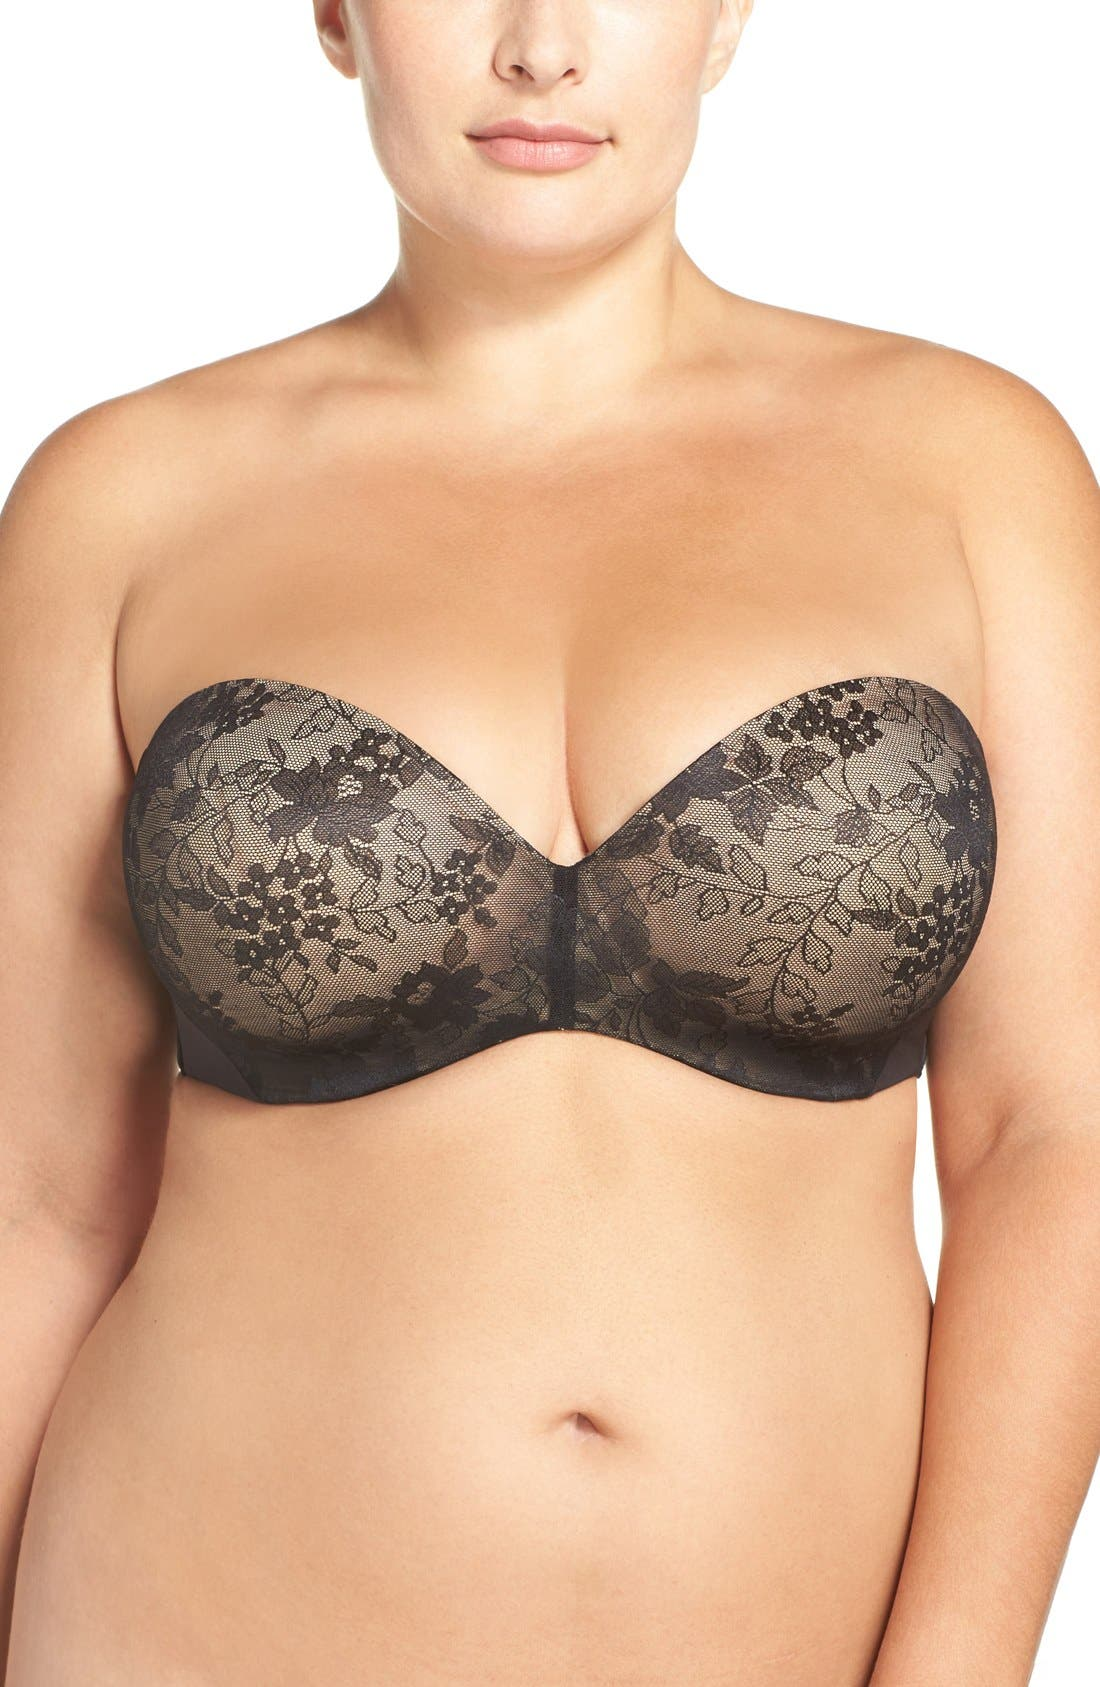 Alternate Image 1 Selected - Curvy Couture Strapless Underwire Push-Up Bra (Plus Size)